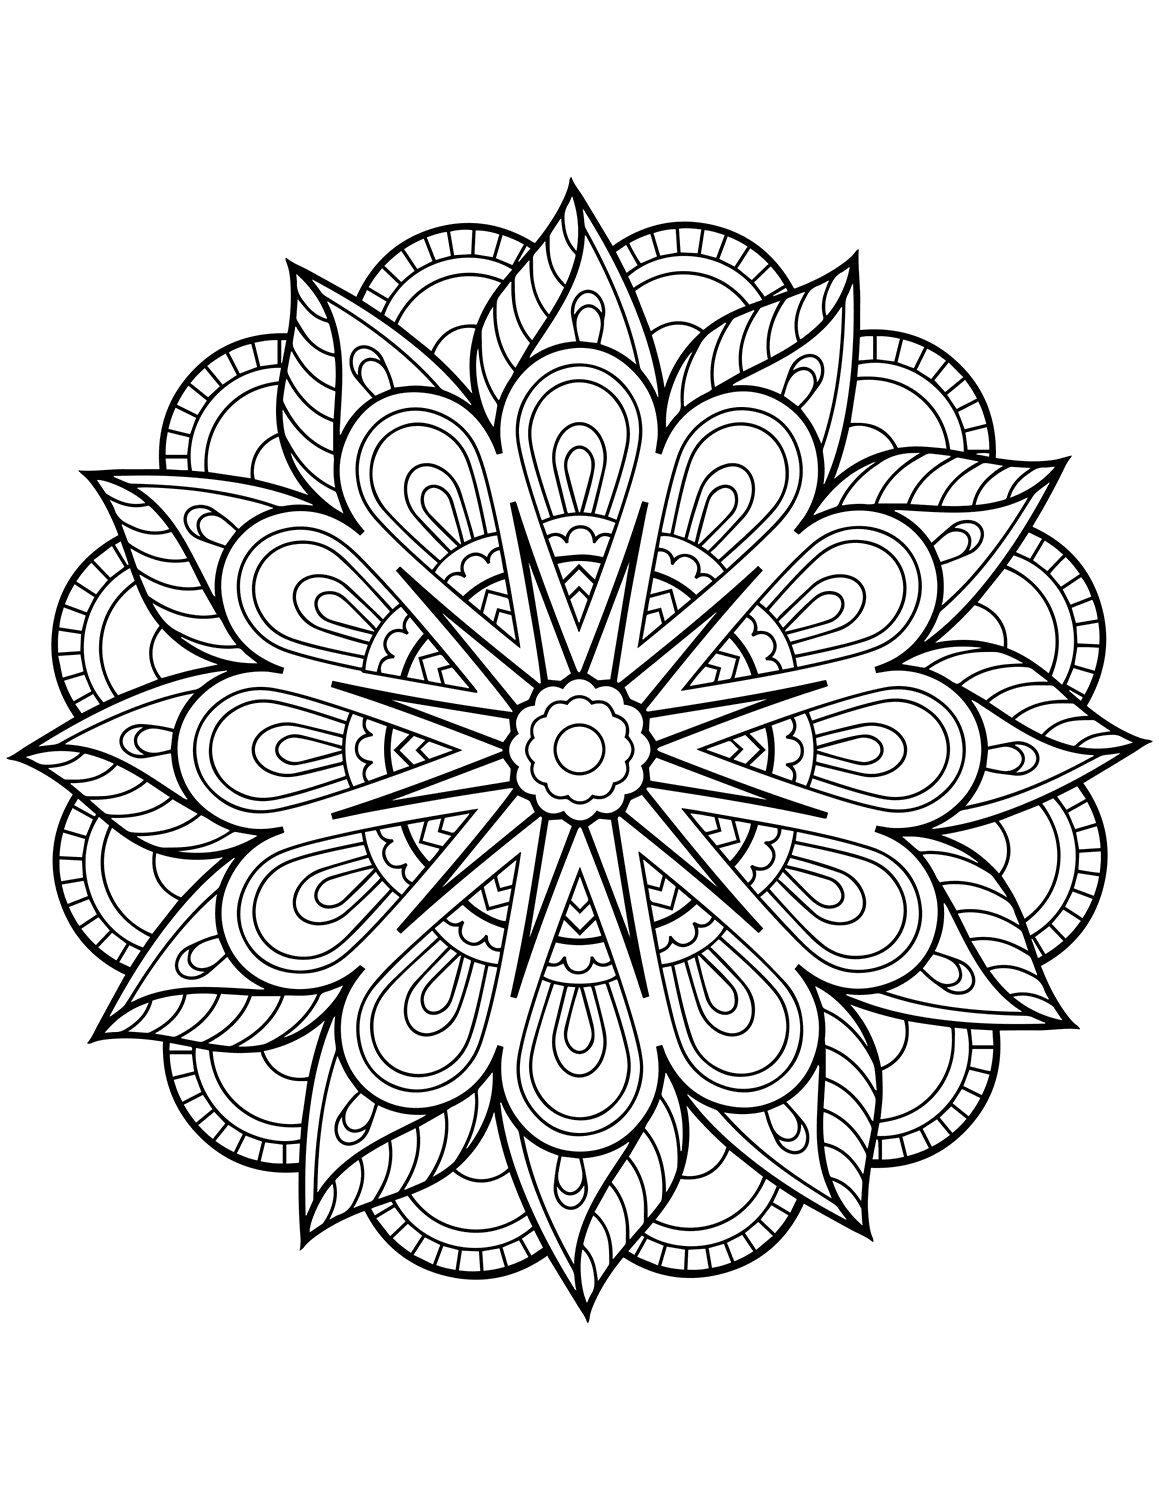 free printable mandalas for adults 25 flower mandala printable coloring page by printbliss for mandalas adults free printable